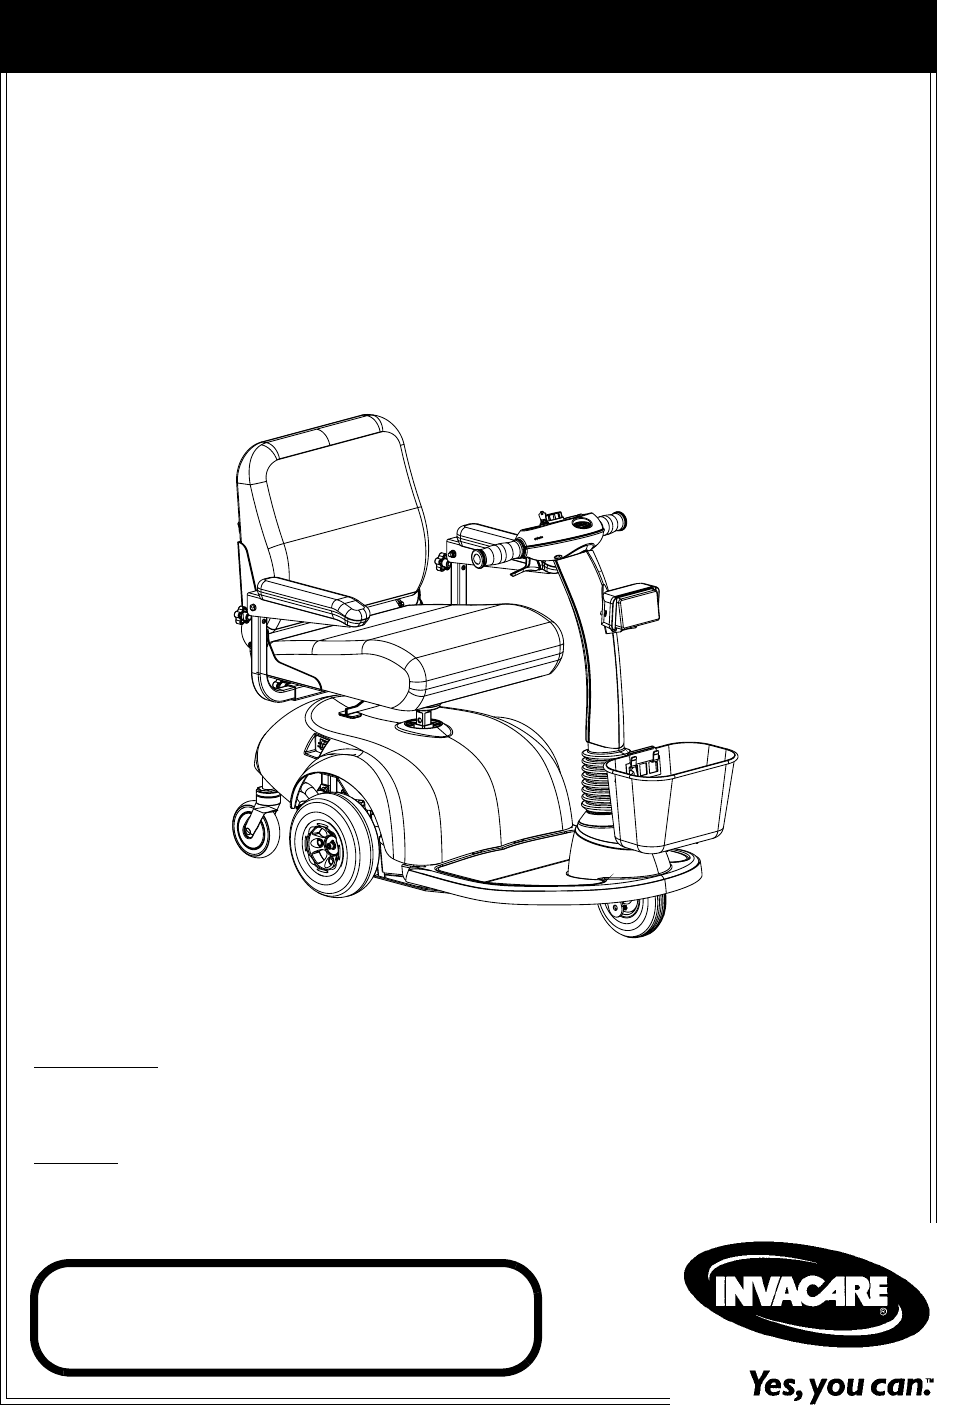 Invacare Mobility Aid HMV Highly 300 User Guide